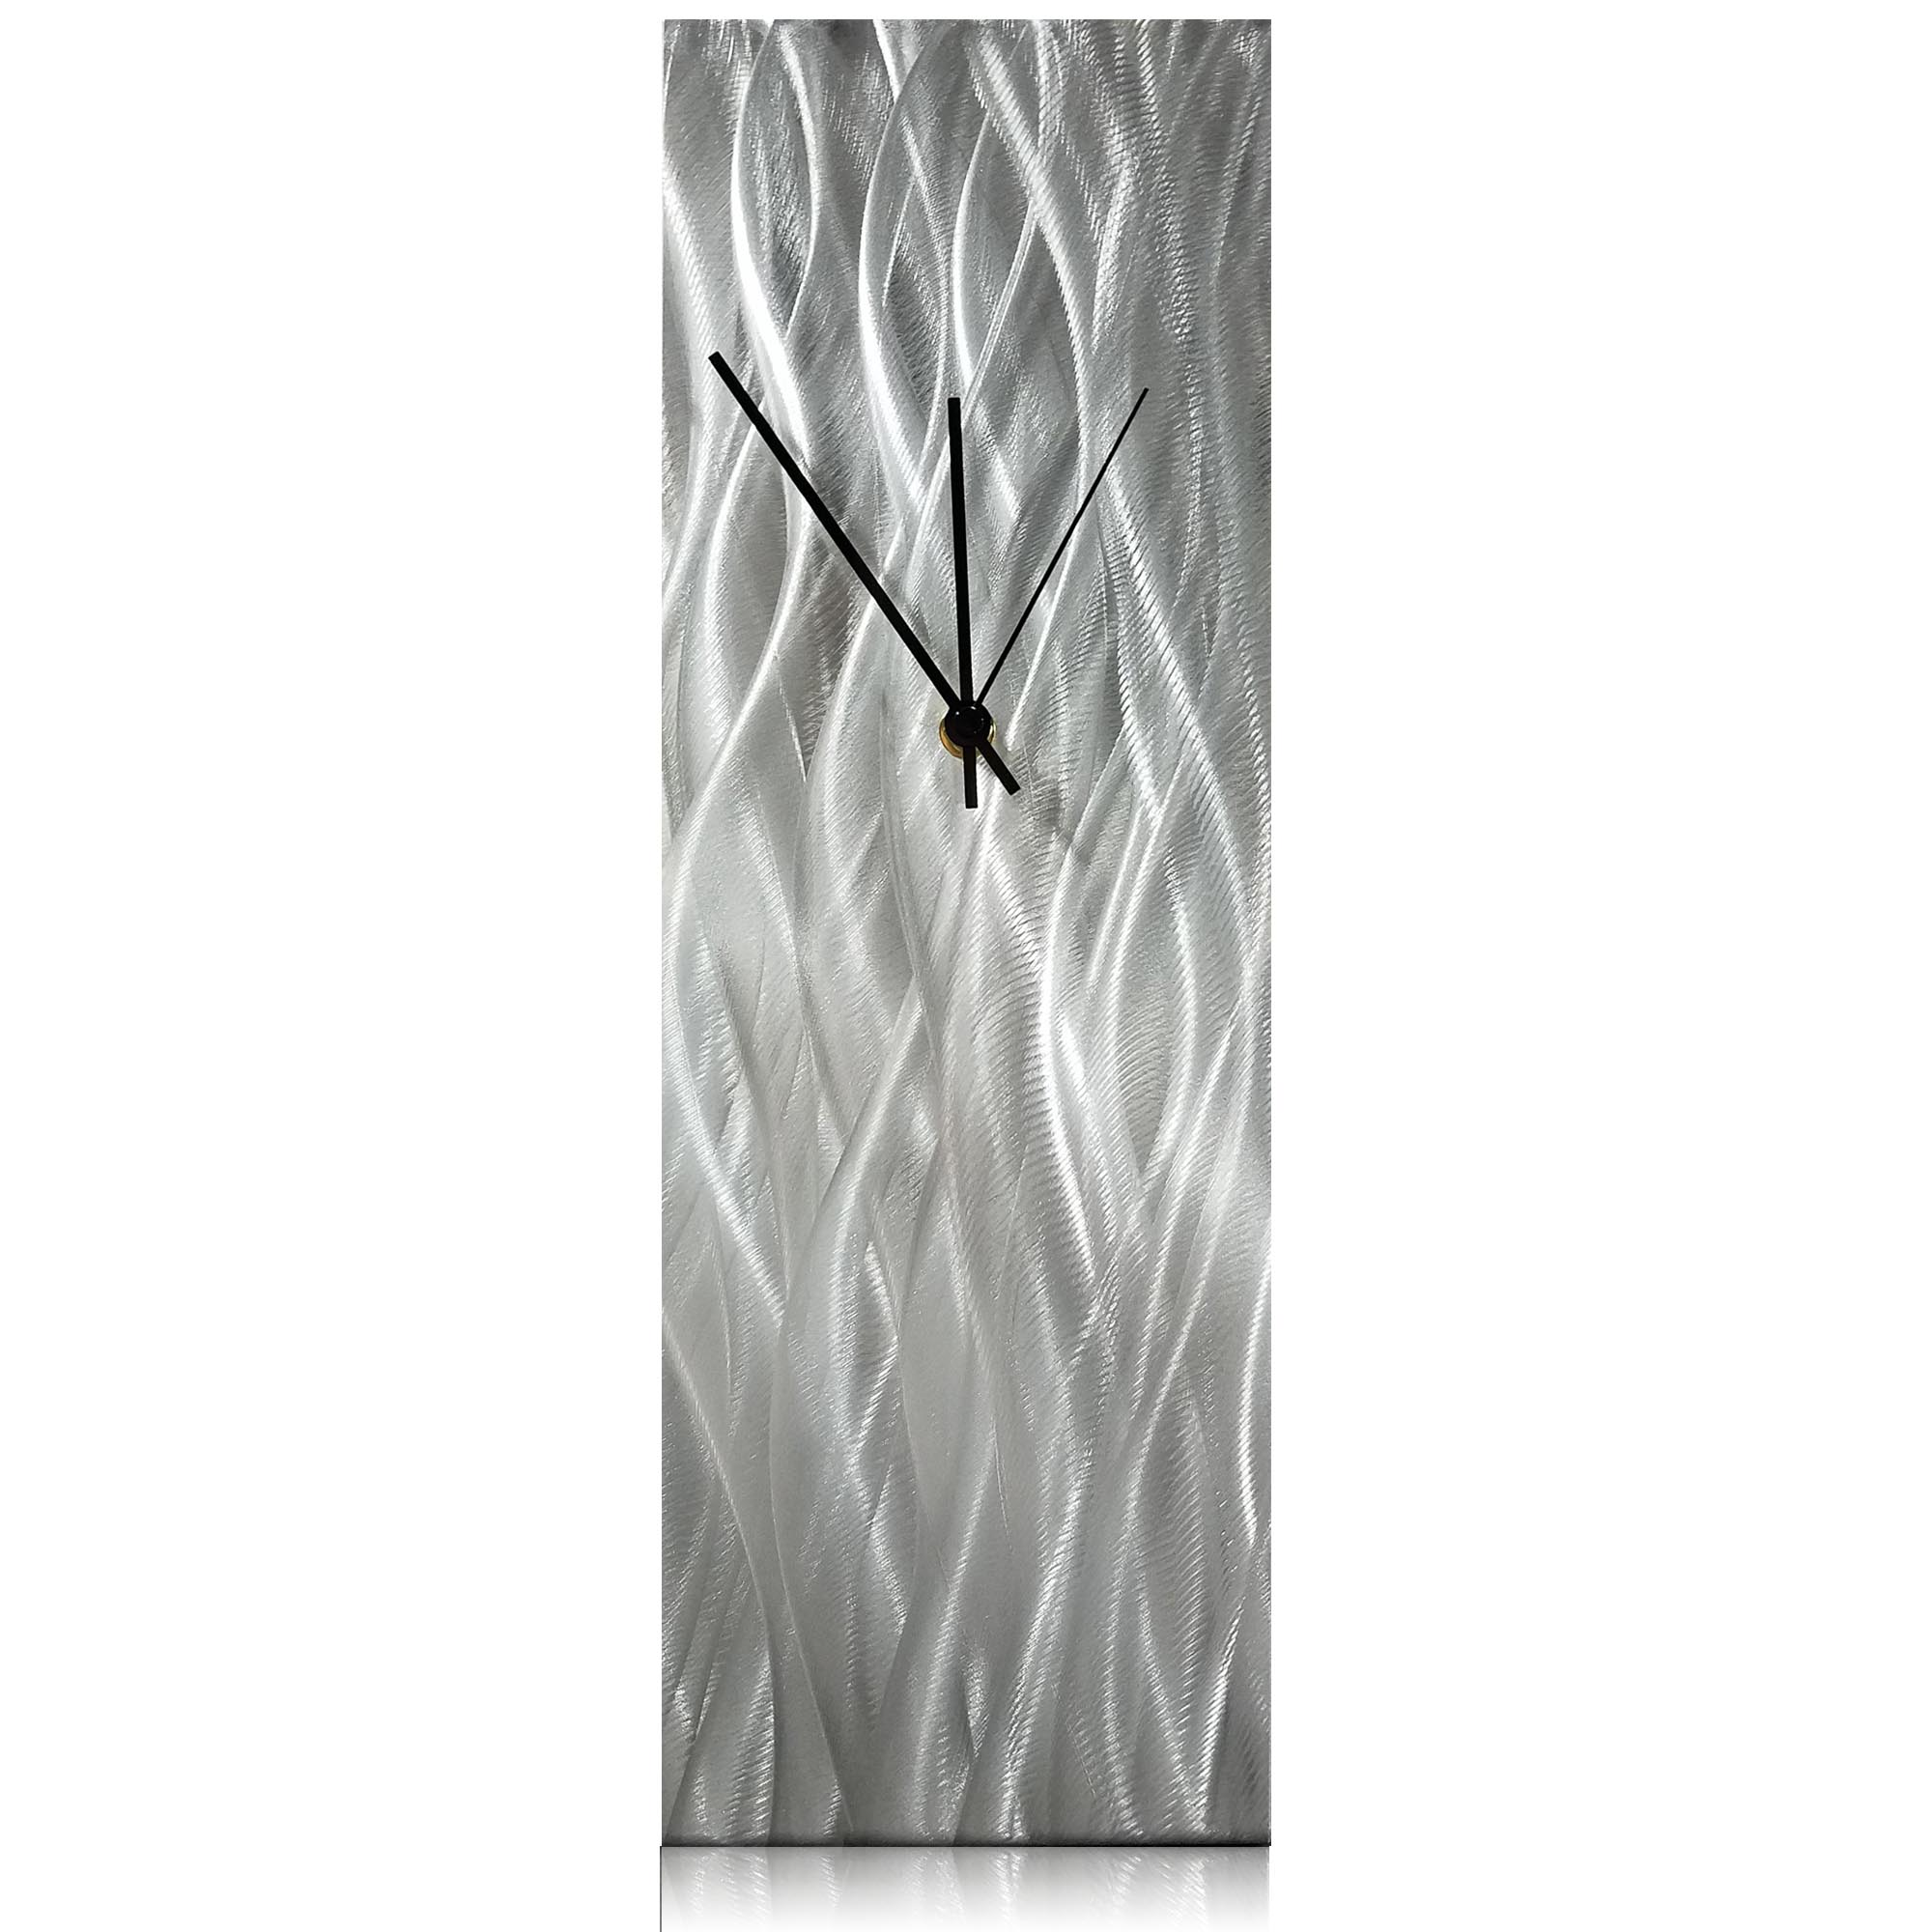 Silver Waves Desk Clock 6x18in Natural Aluminum